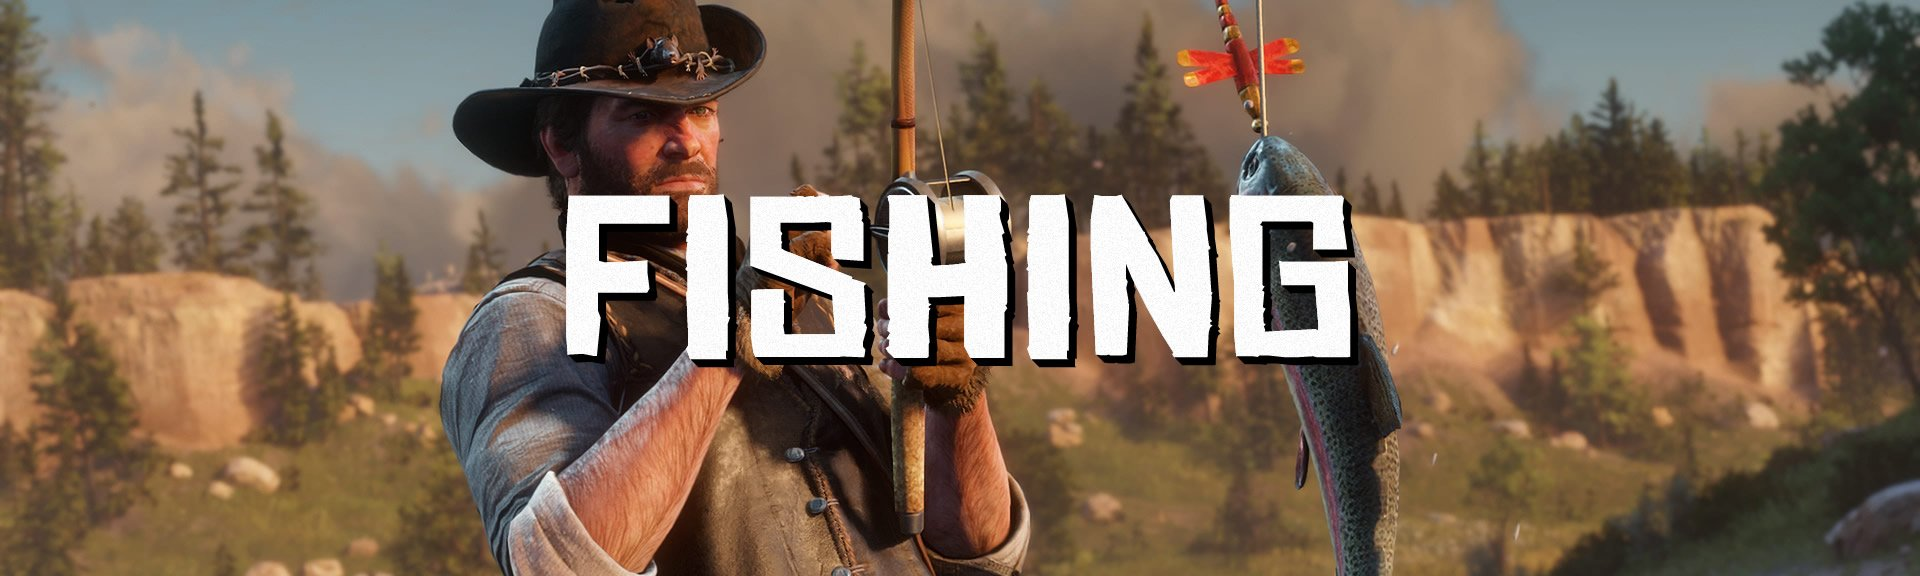 Red Dead Redemption 2 walkthrough and guide | Shacknews